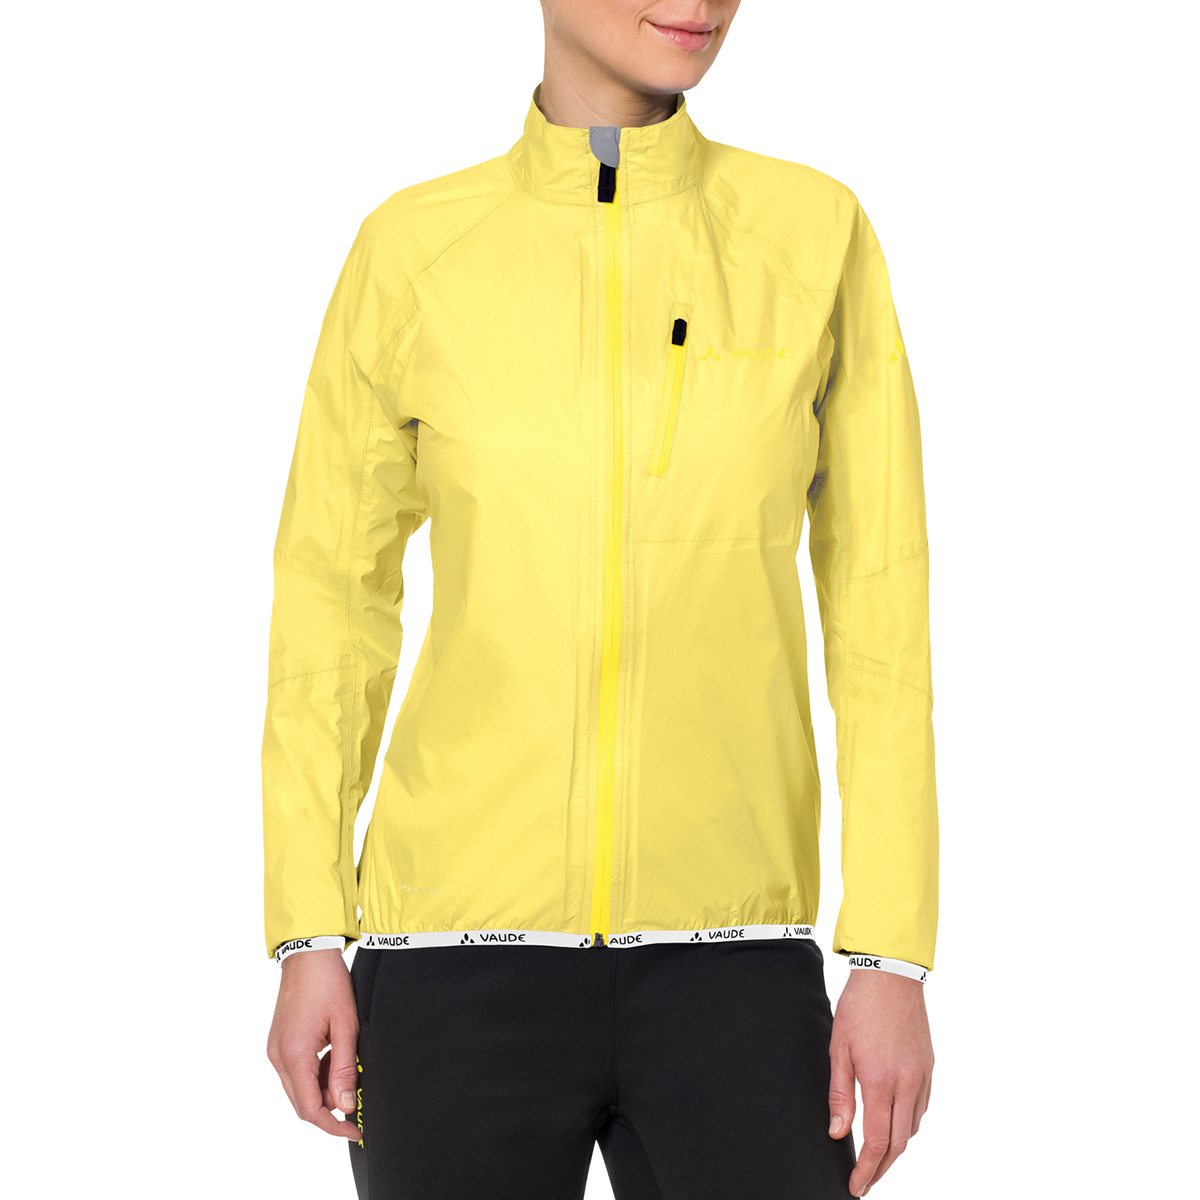 special section clear-cut texture limpid in sight Details about Vaude Women's Drop Biking Rain Jacket III - Mimosa